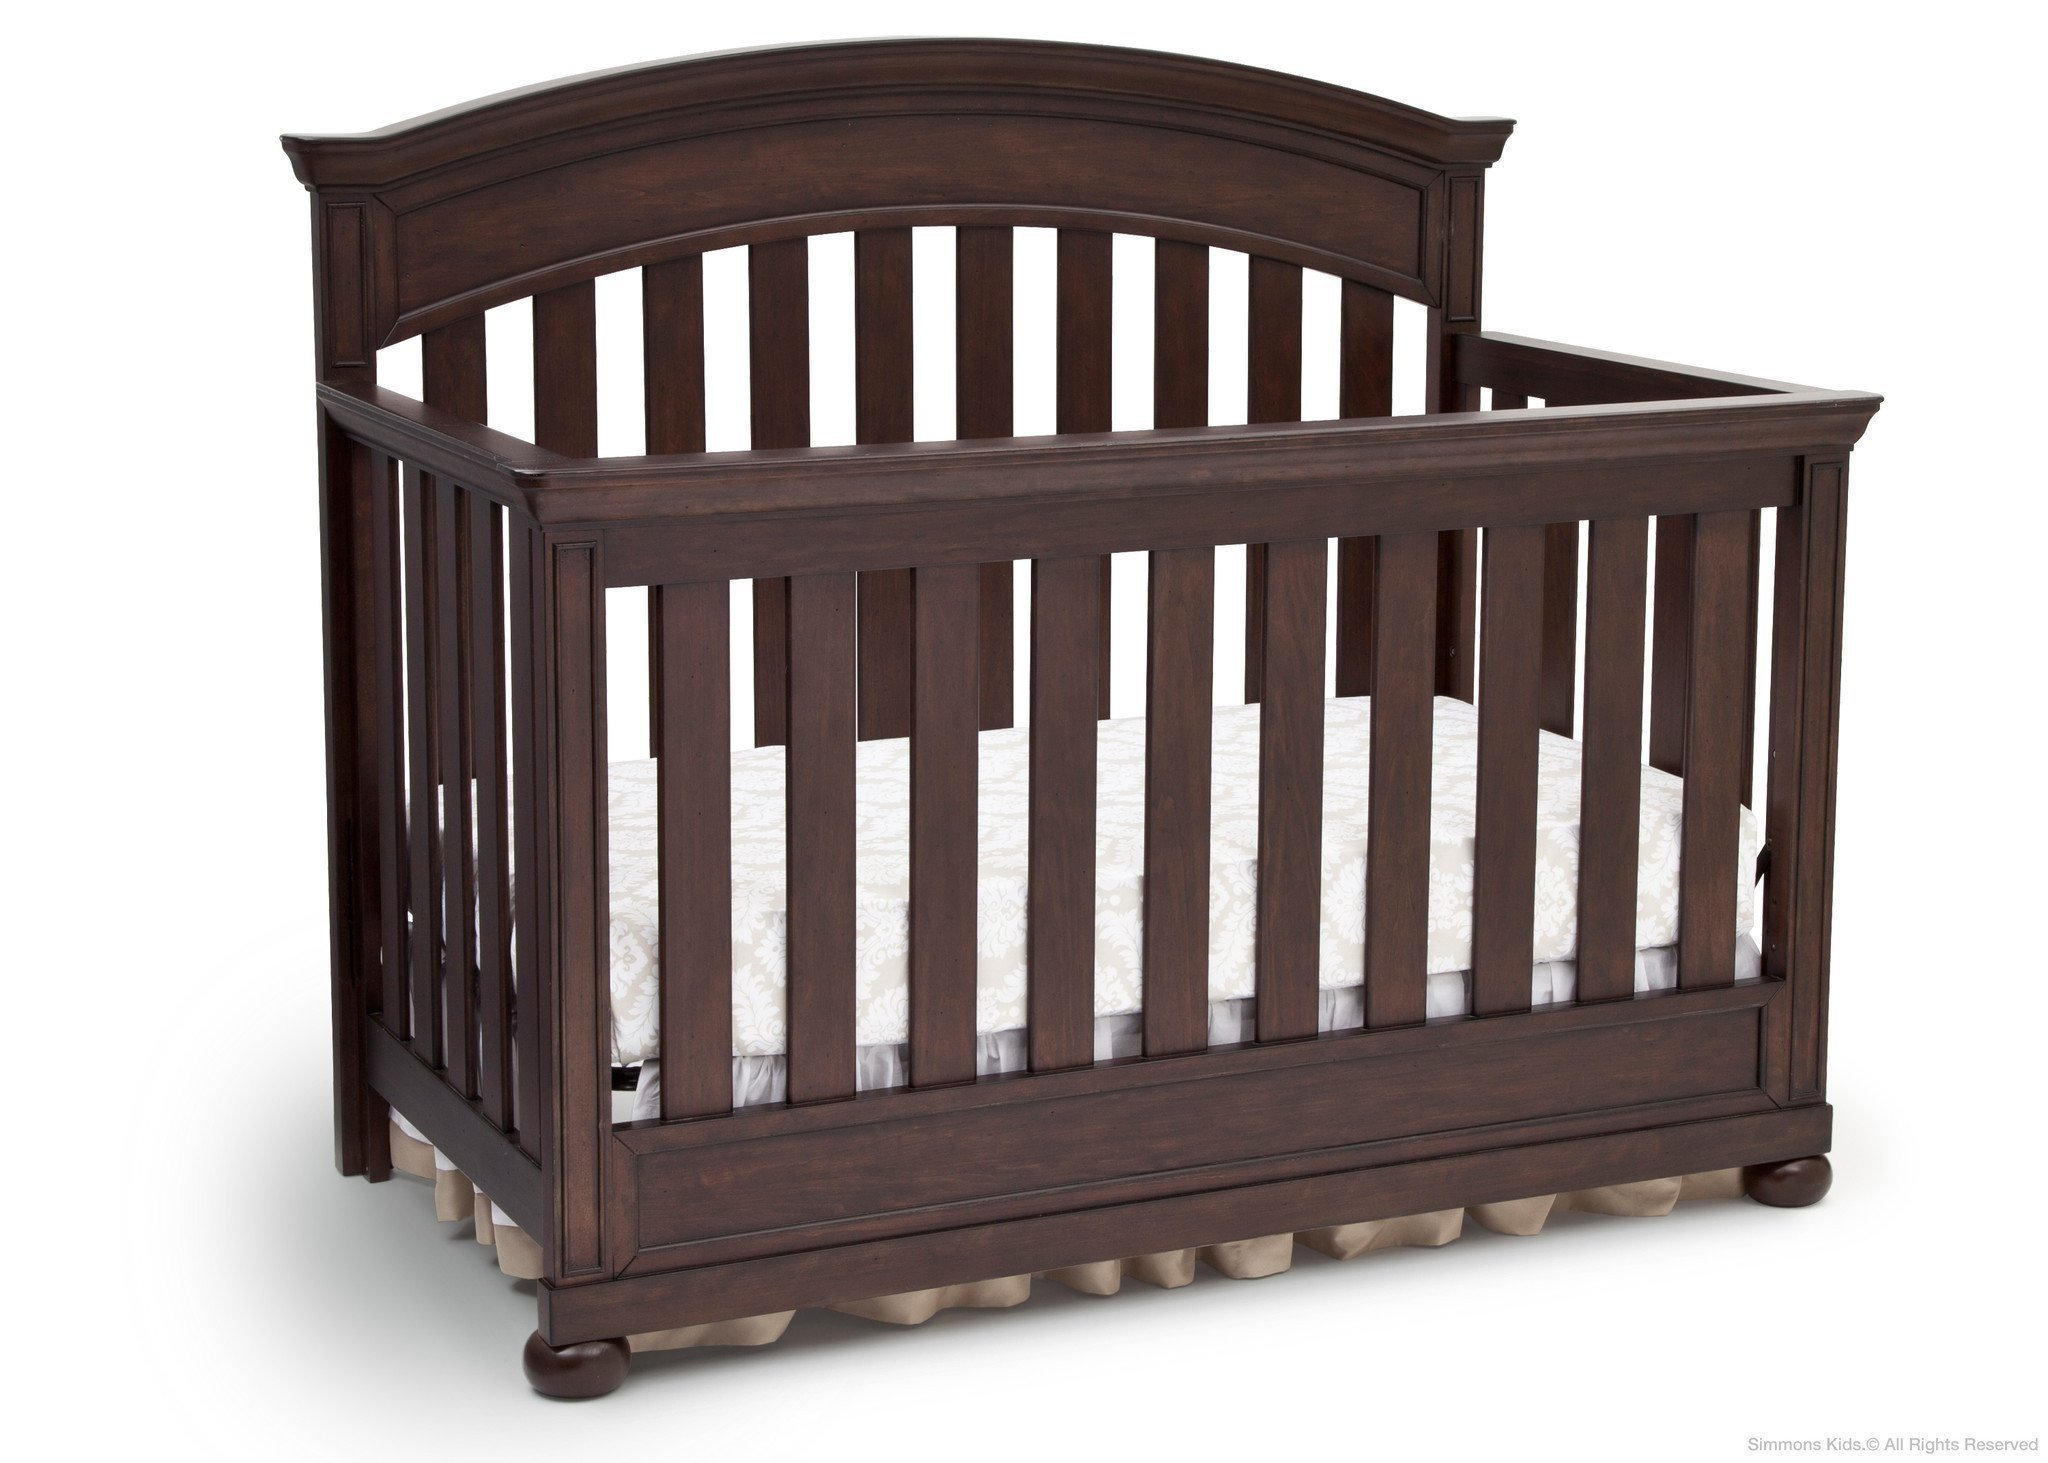 Full Size Conversion Kit Bed Rails for Simmons/Delta Childrens Castille Crib - Vintage Espresso by CC KITS (Image #3)